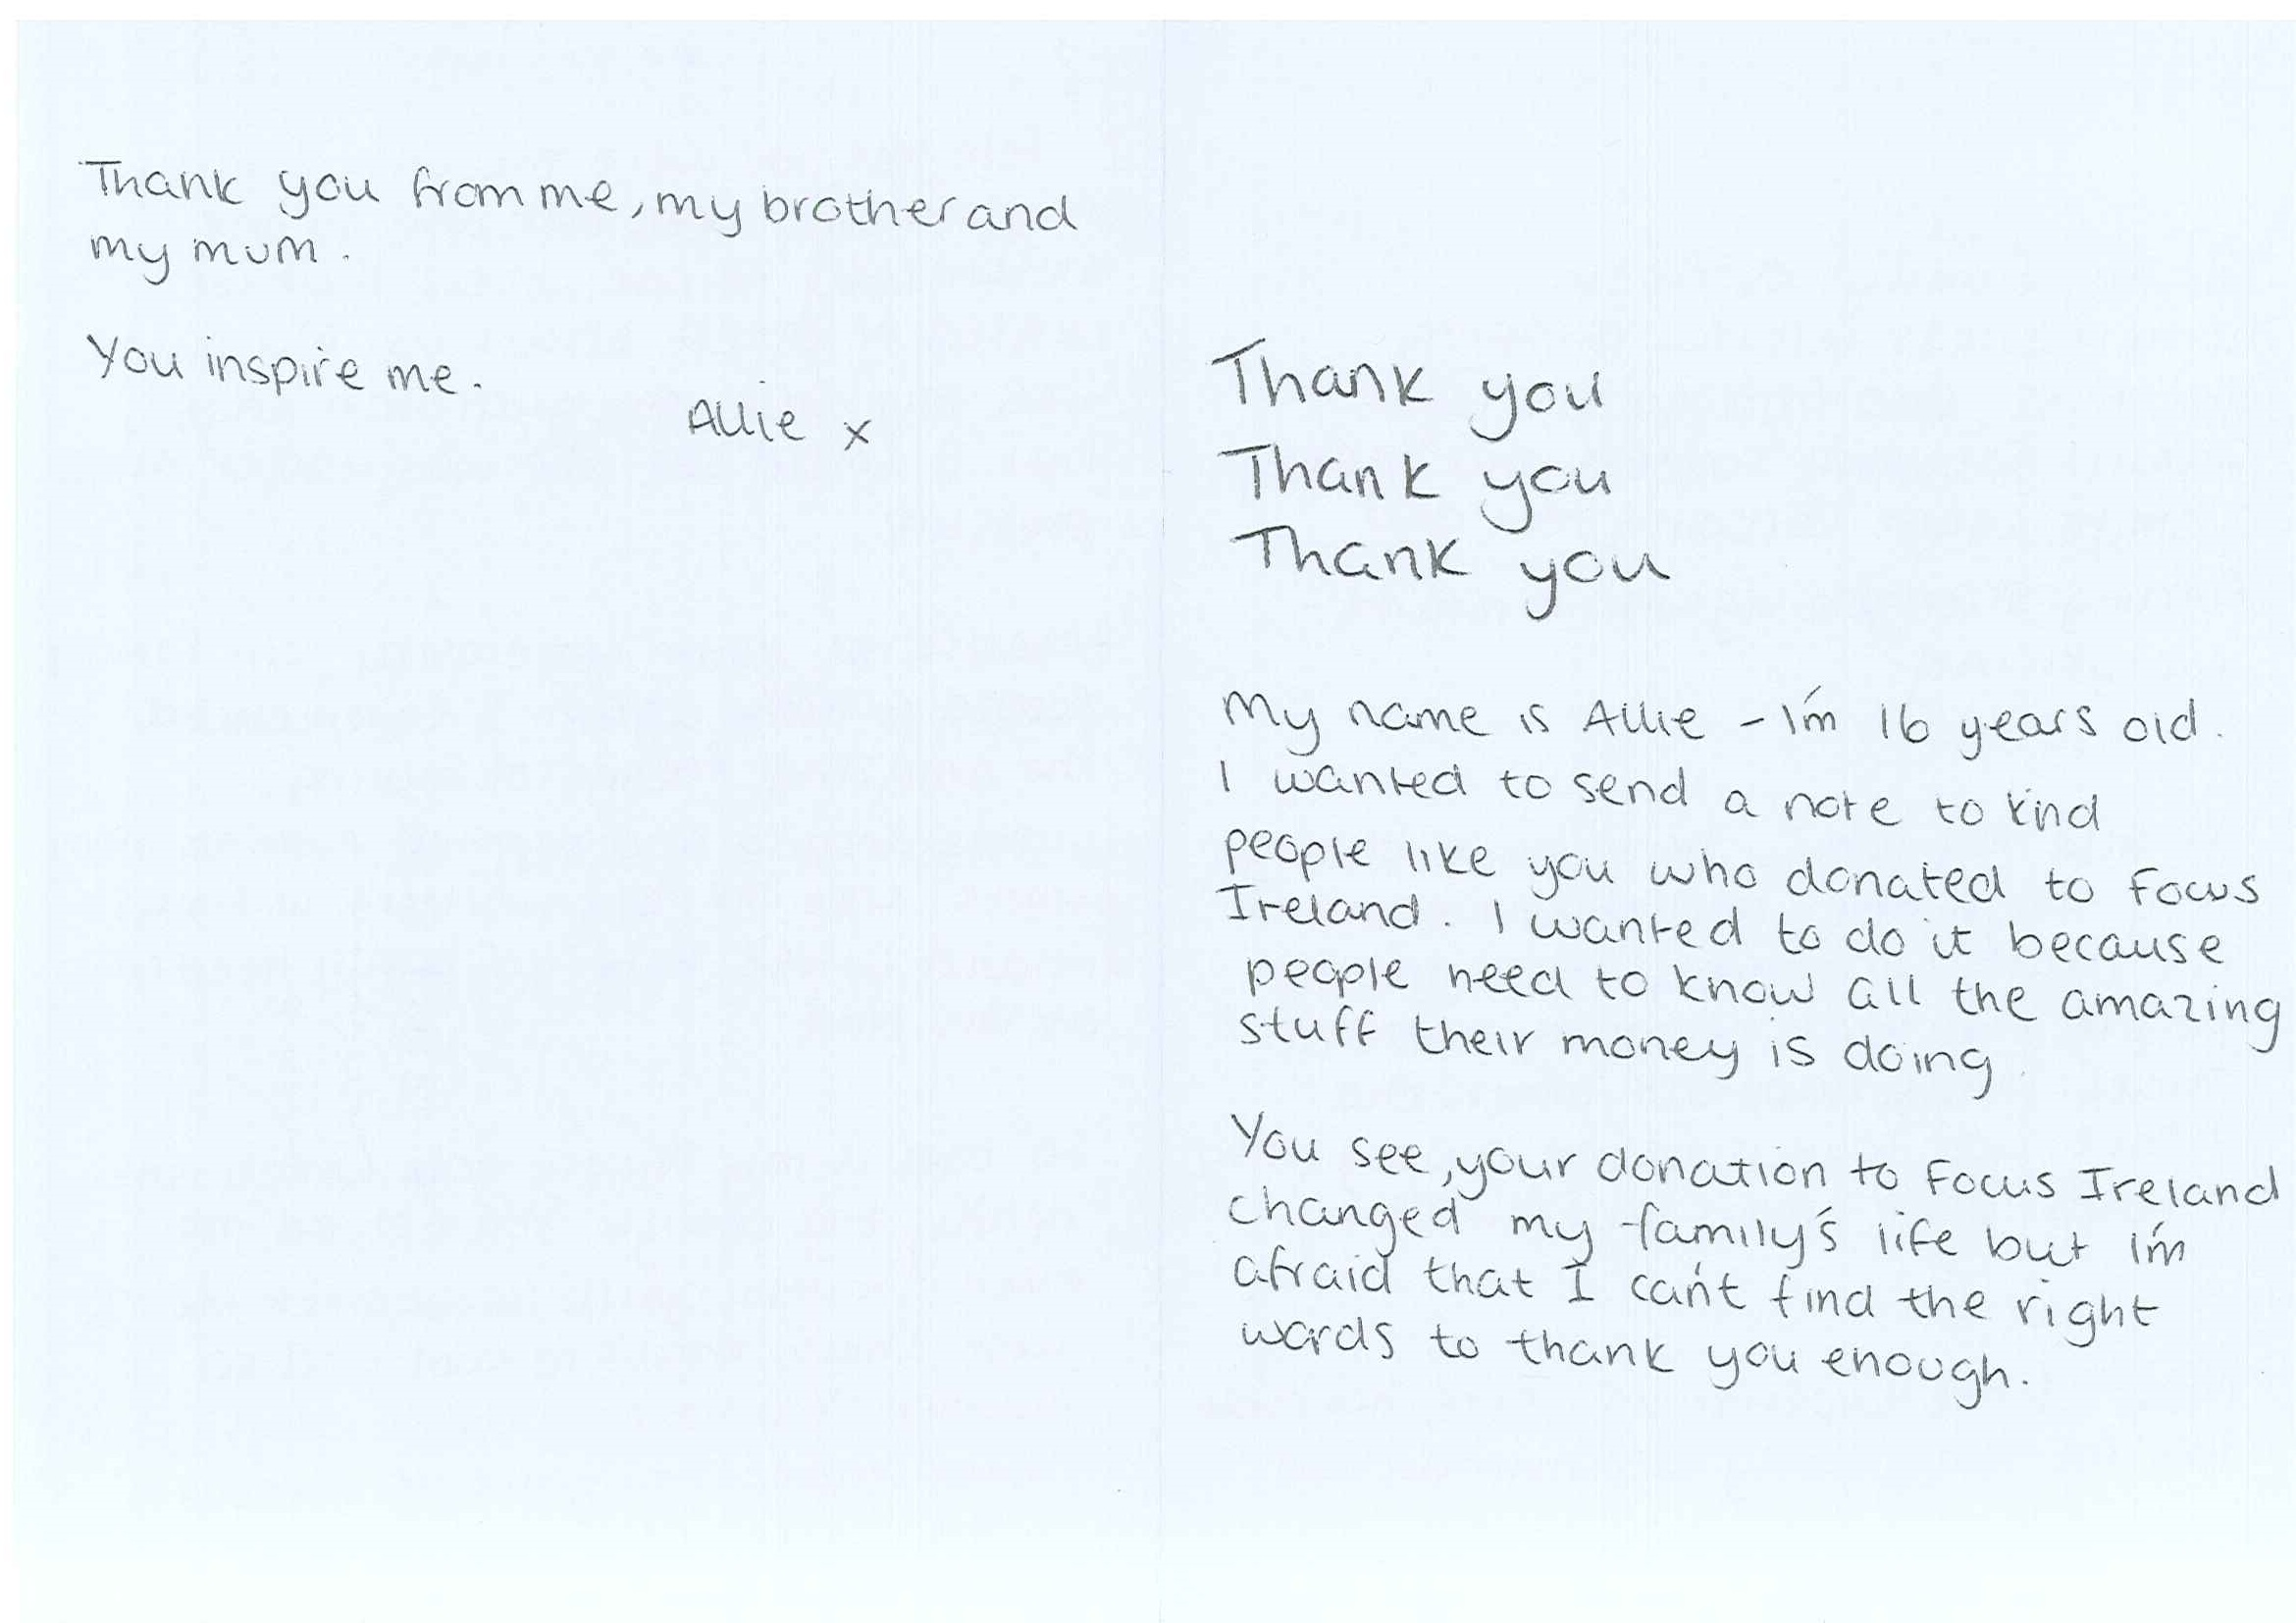 Campaign gallery focus ireland thank you letter and note from allie outside pages of letter from allie to the donor expocarfo